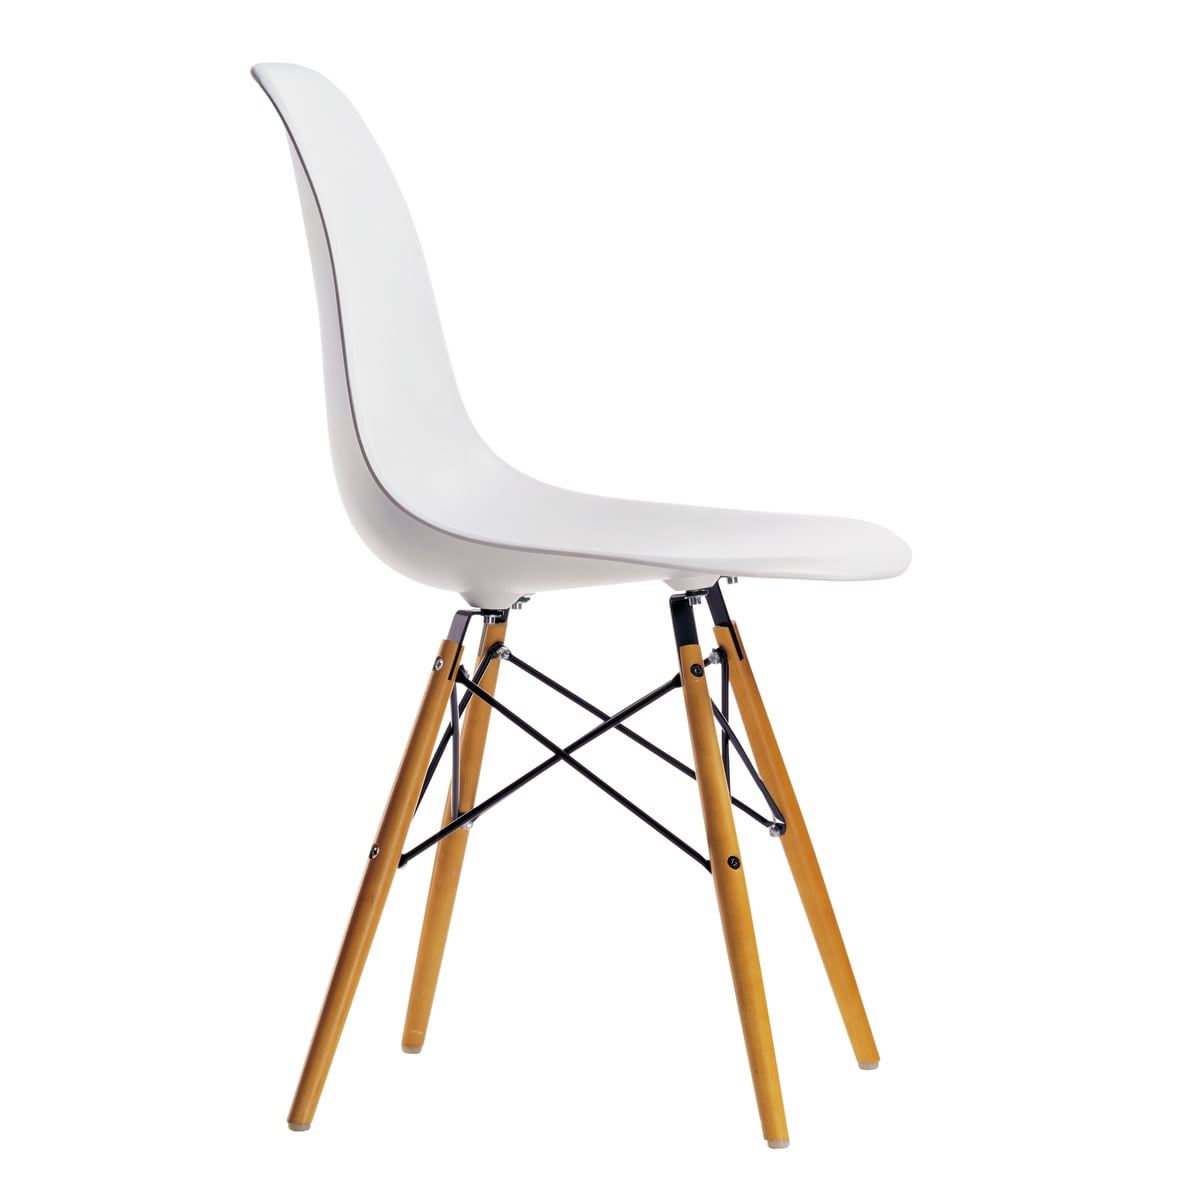 Chaise Design Eames Dsw Blanche.Vitra Kit Promotionnel Chaise Eames Plastic Side Chair Dsw Lot De 4 Erable Jaunatre Blanc Feutre De Planeur Blanc